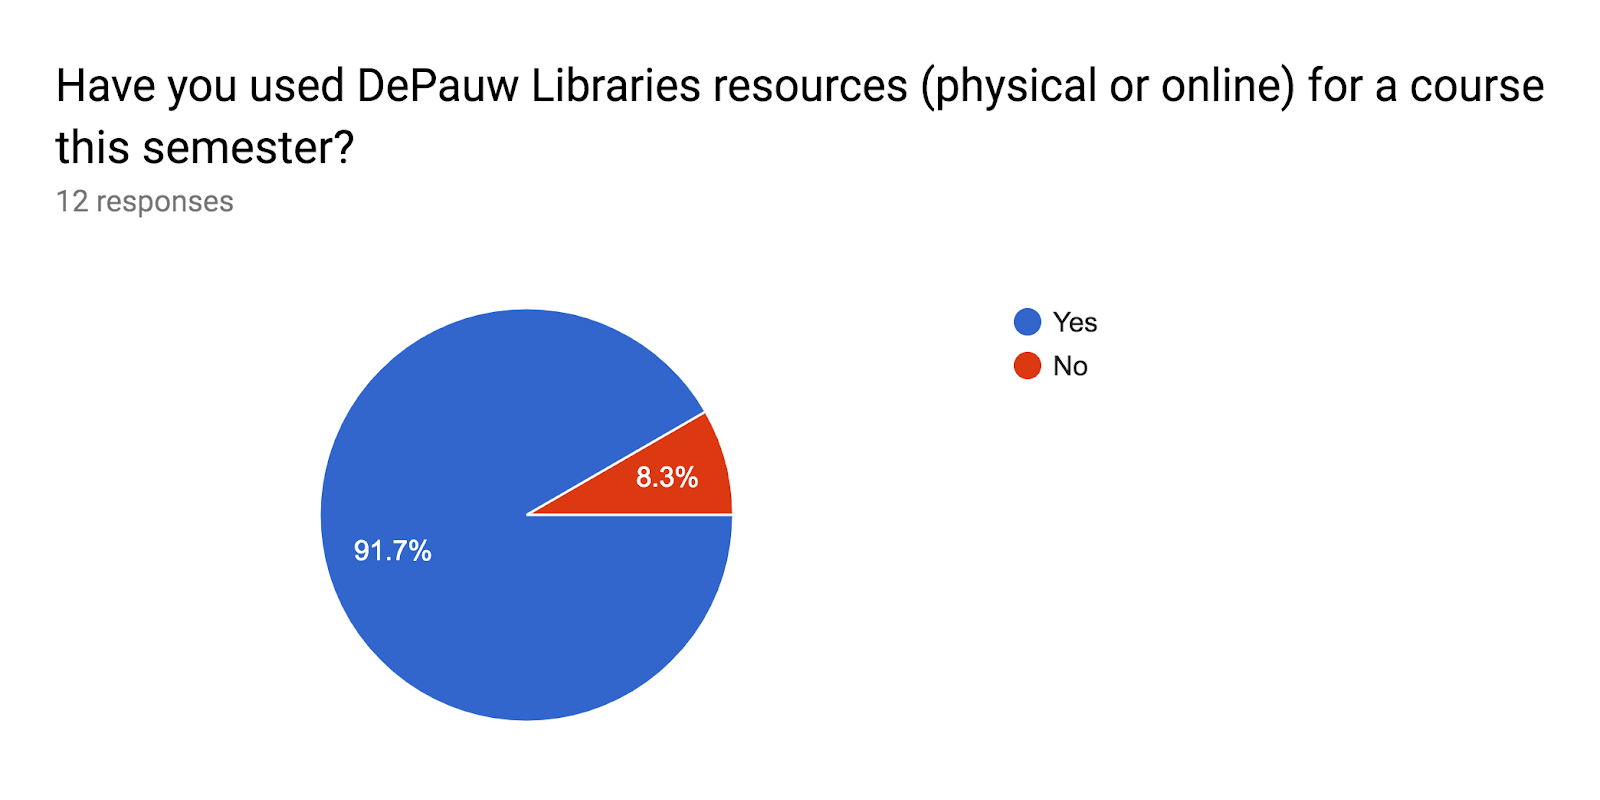 Forms response chart. Question title: Have you used DePauw Libraries resources (physical or online) for a course this semester?. Number of responses: 12 responses.